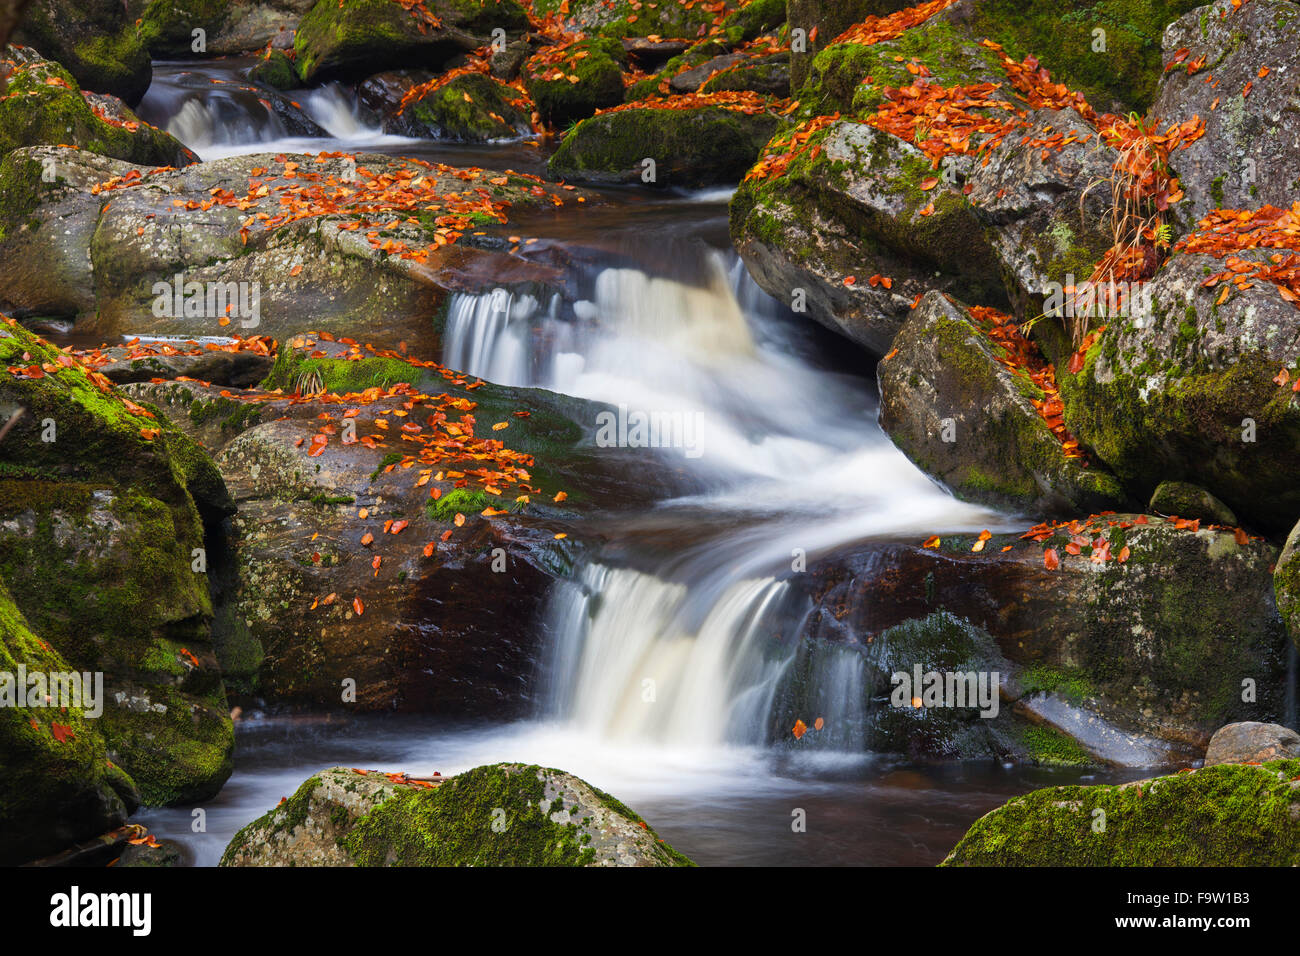 Waterfalls on the Große Ohe river which flows through the Steinklamm valley, Bavarian Forest National Park, - Stock Image